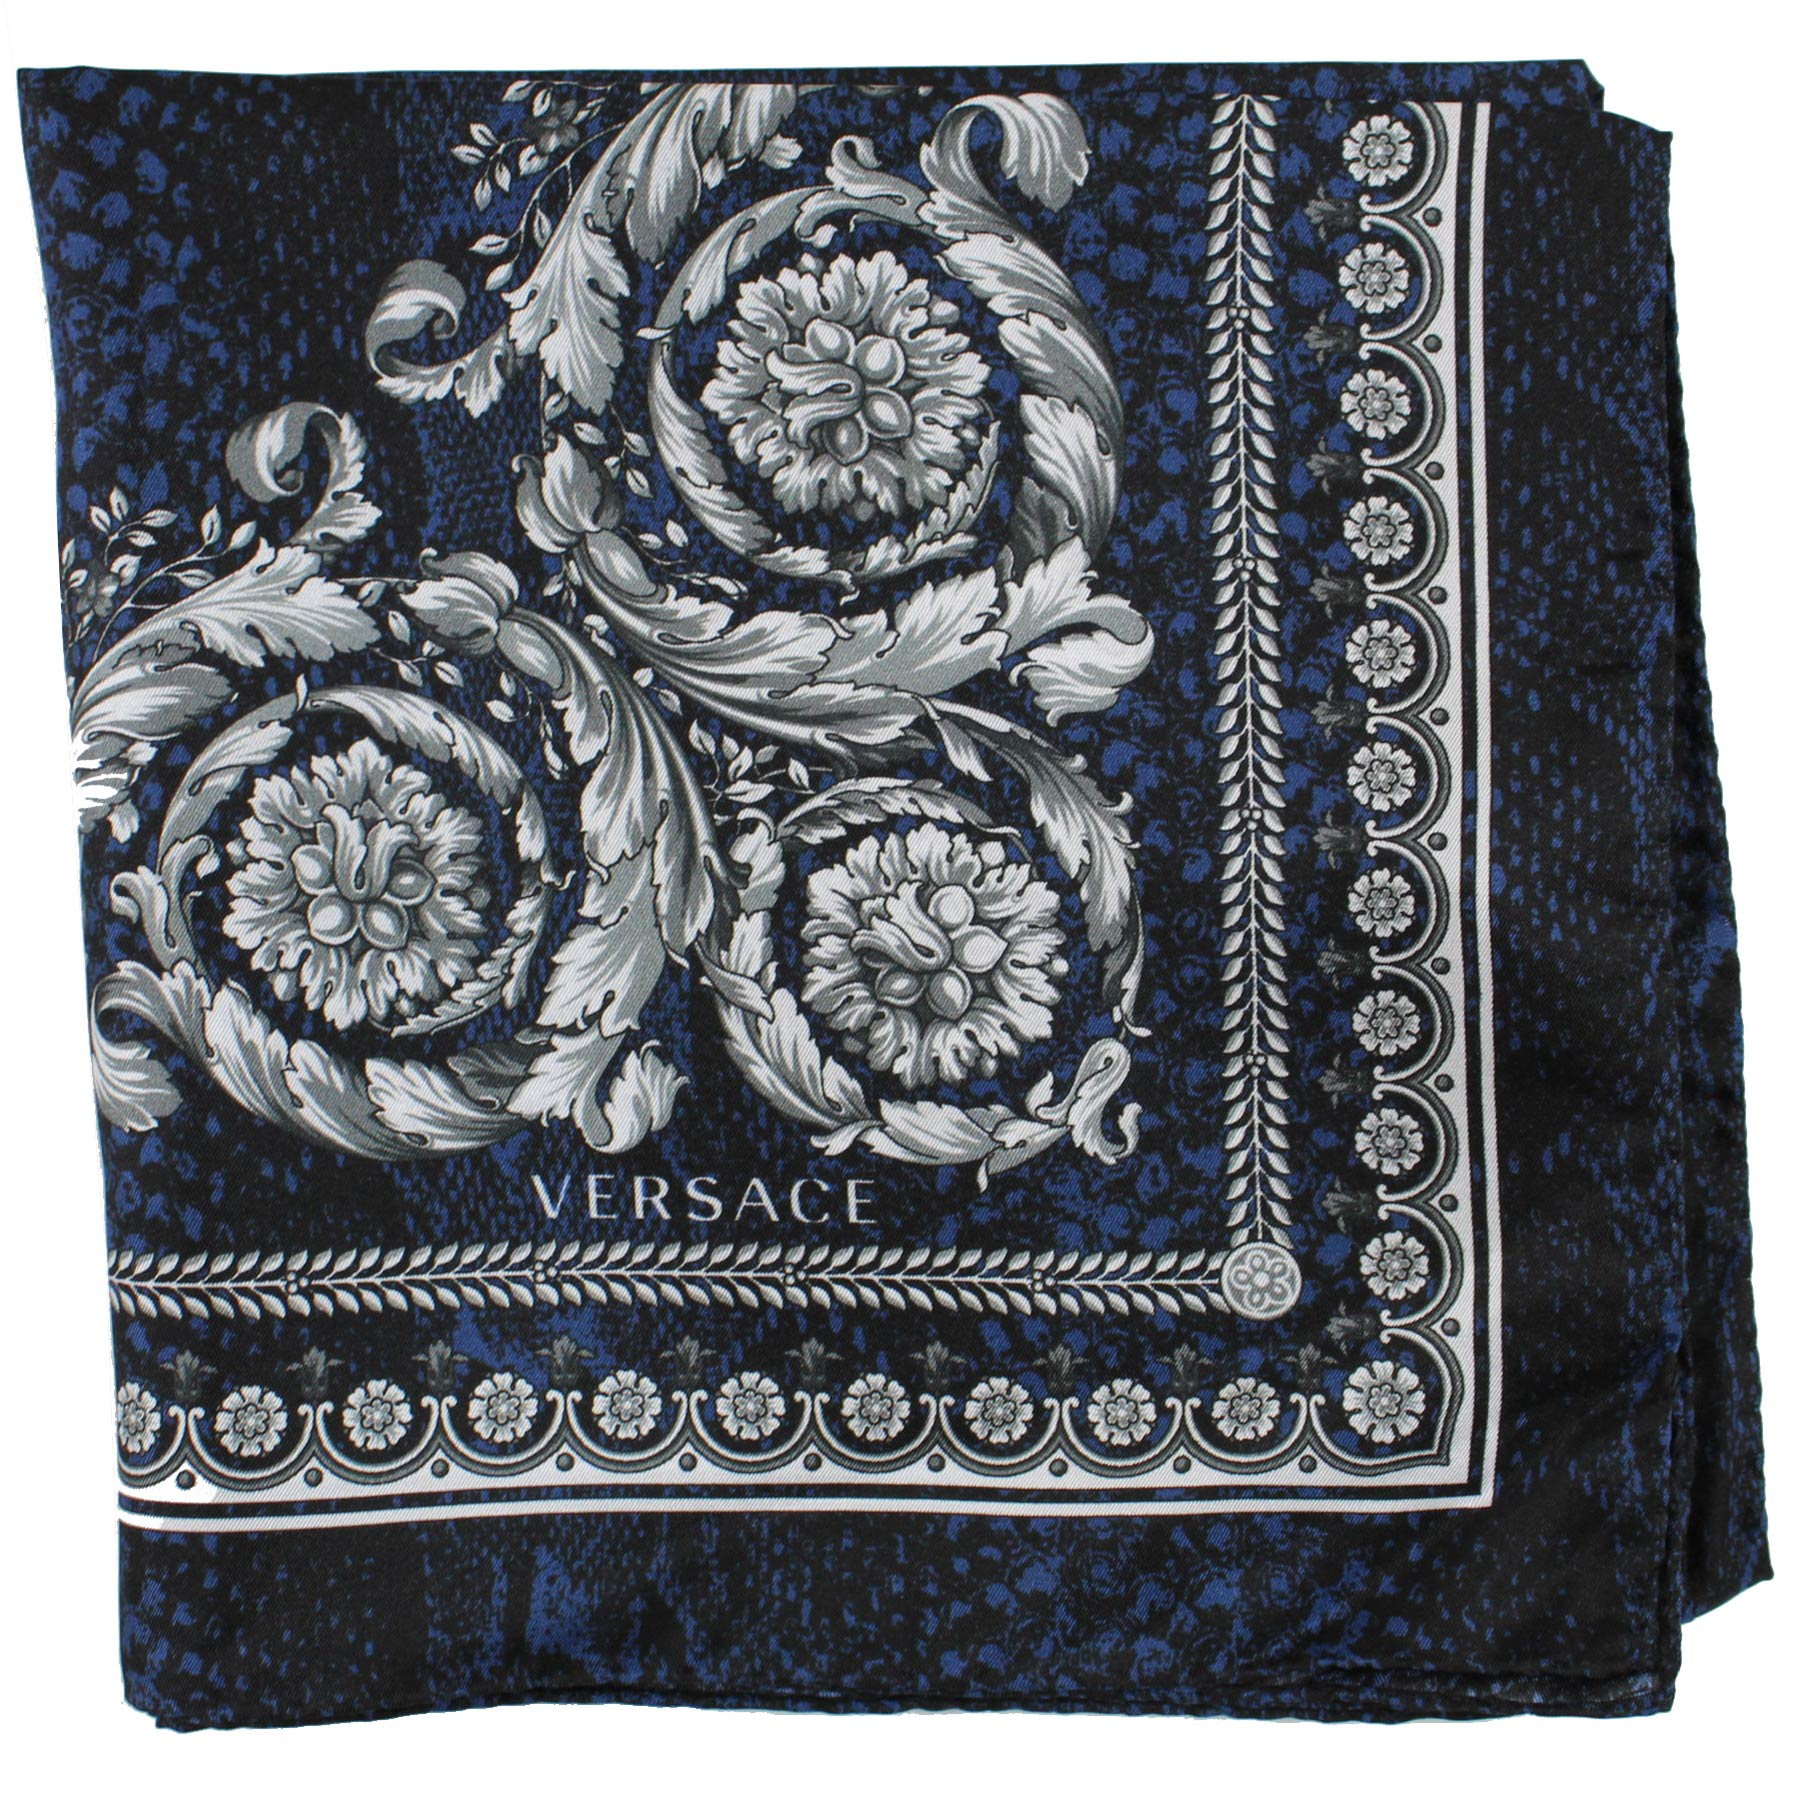 Versace Scarf Black Midnight Blue Snakeskin Baroque - Large Twill Silk Square Scarf